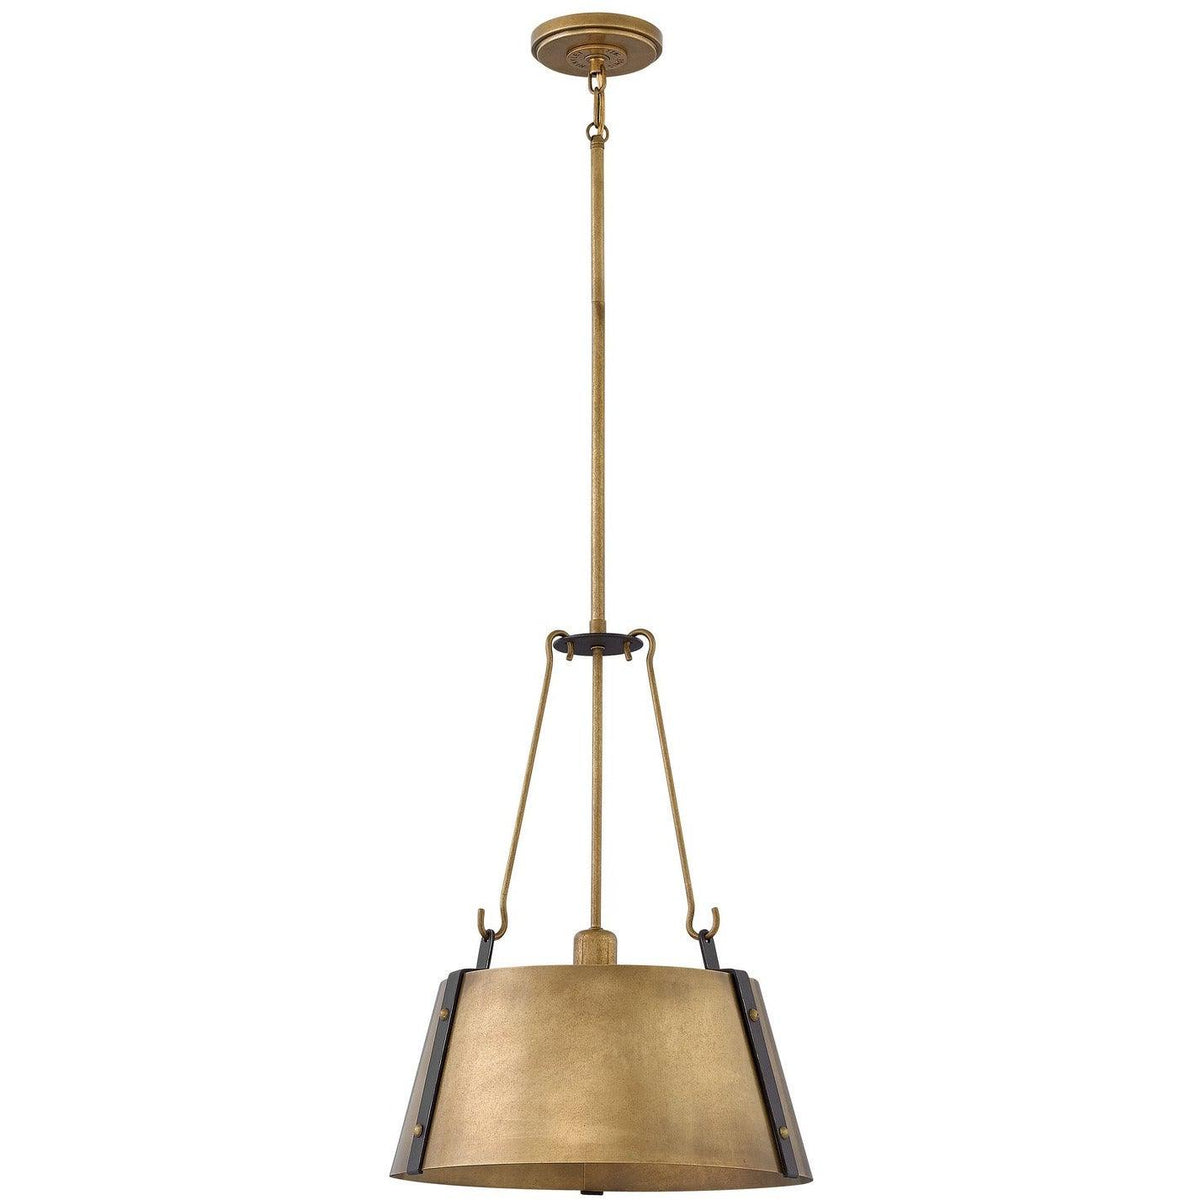 Hinkley Canada - 3394RS - One Light Pendant - Cartwright - Rustic Brass